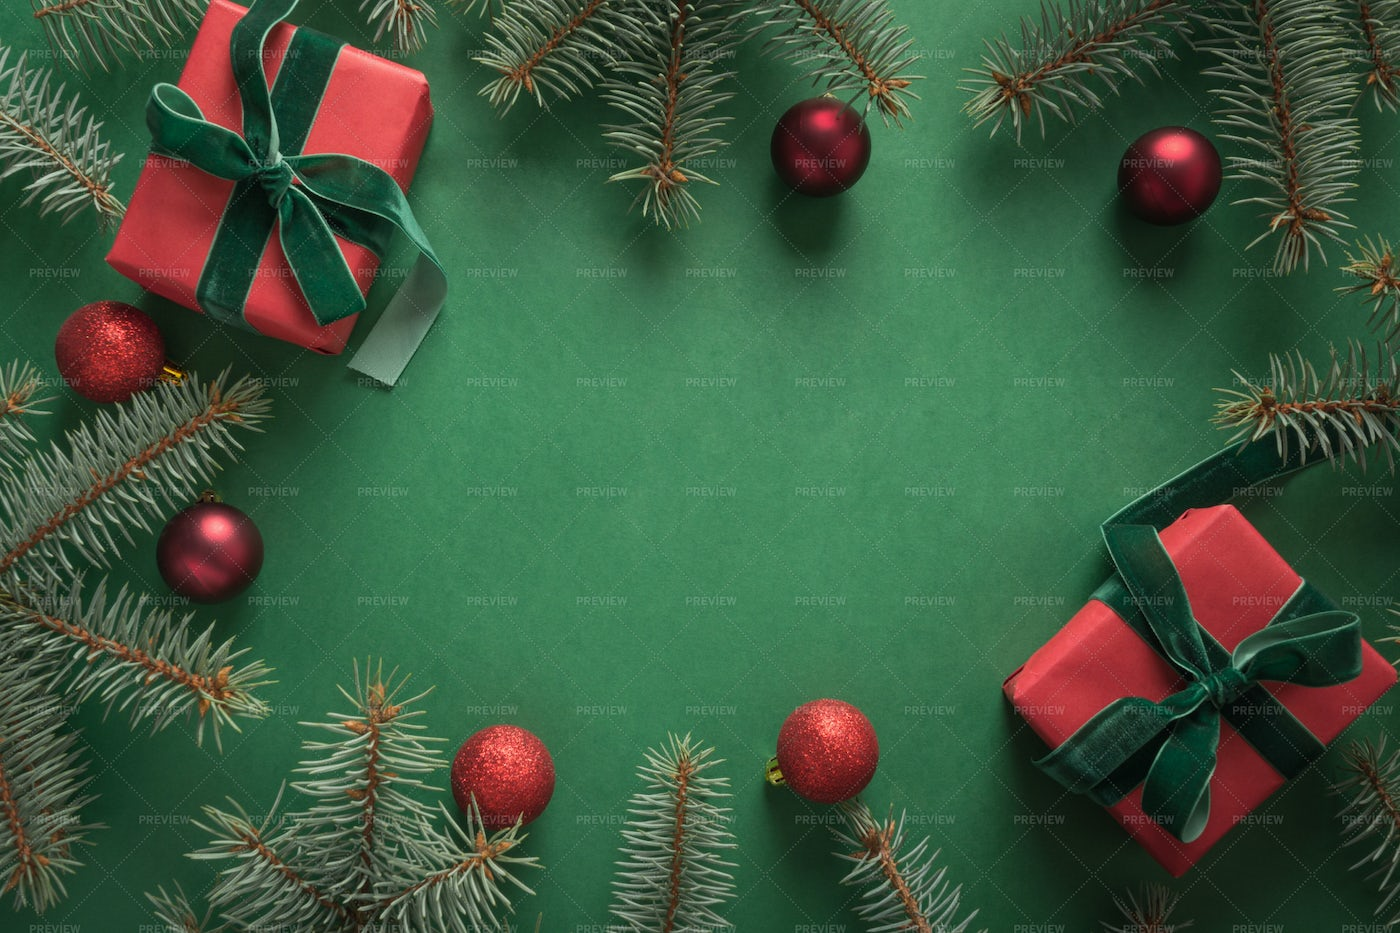 Christmas Border With Gifts: Stock Photos